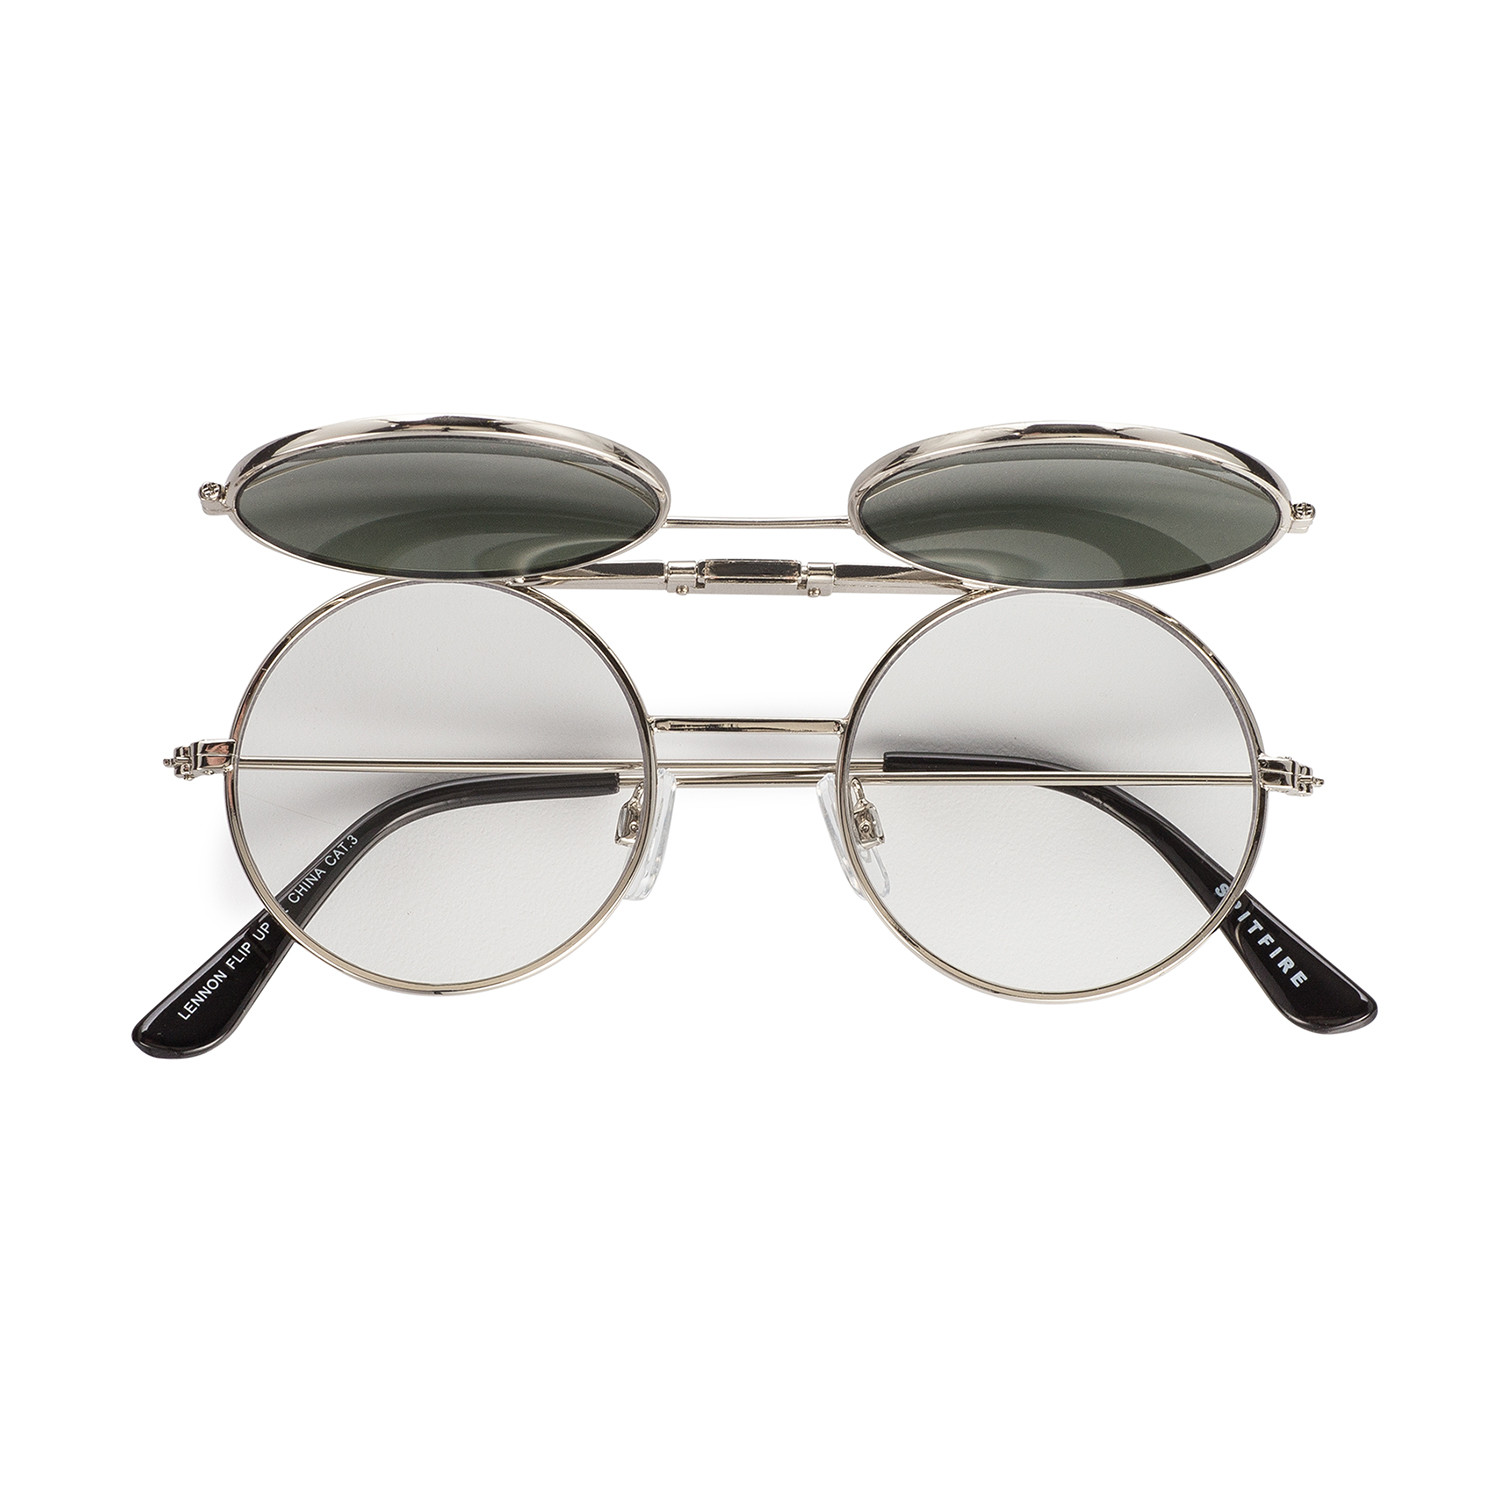 57621a8277105 Lennon Flip    Silver + Black - Spitfire Sunglasses - Touch of Modern